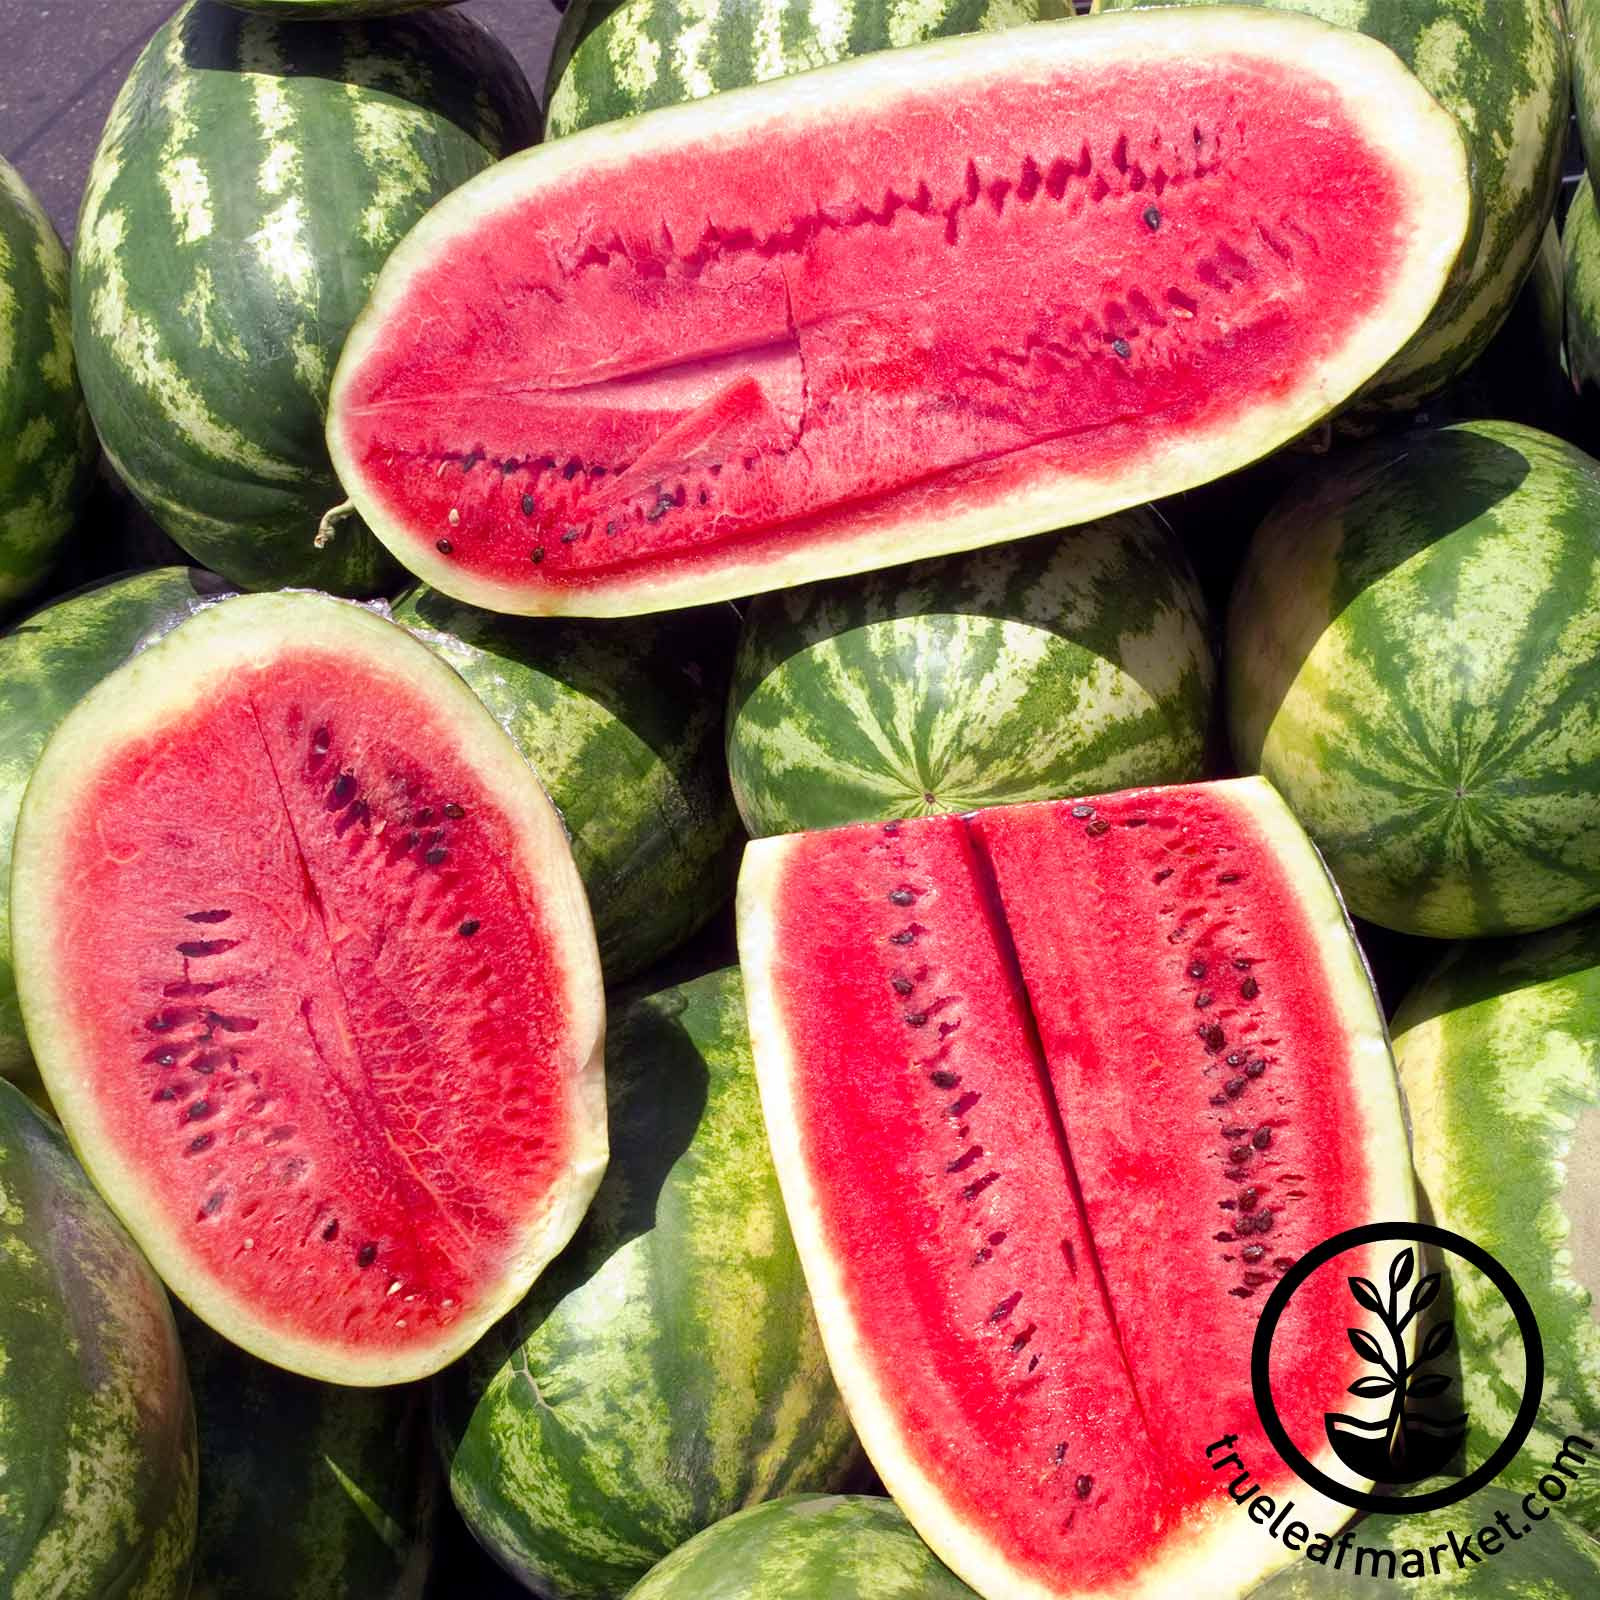 Watermelon Sweet Beauty Hybrid Seed